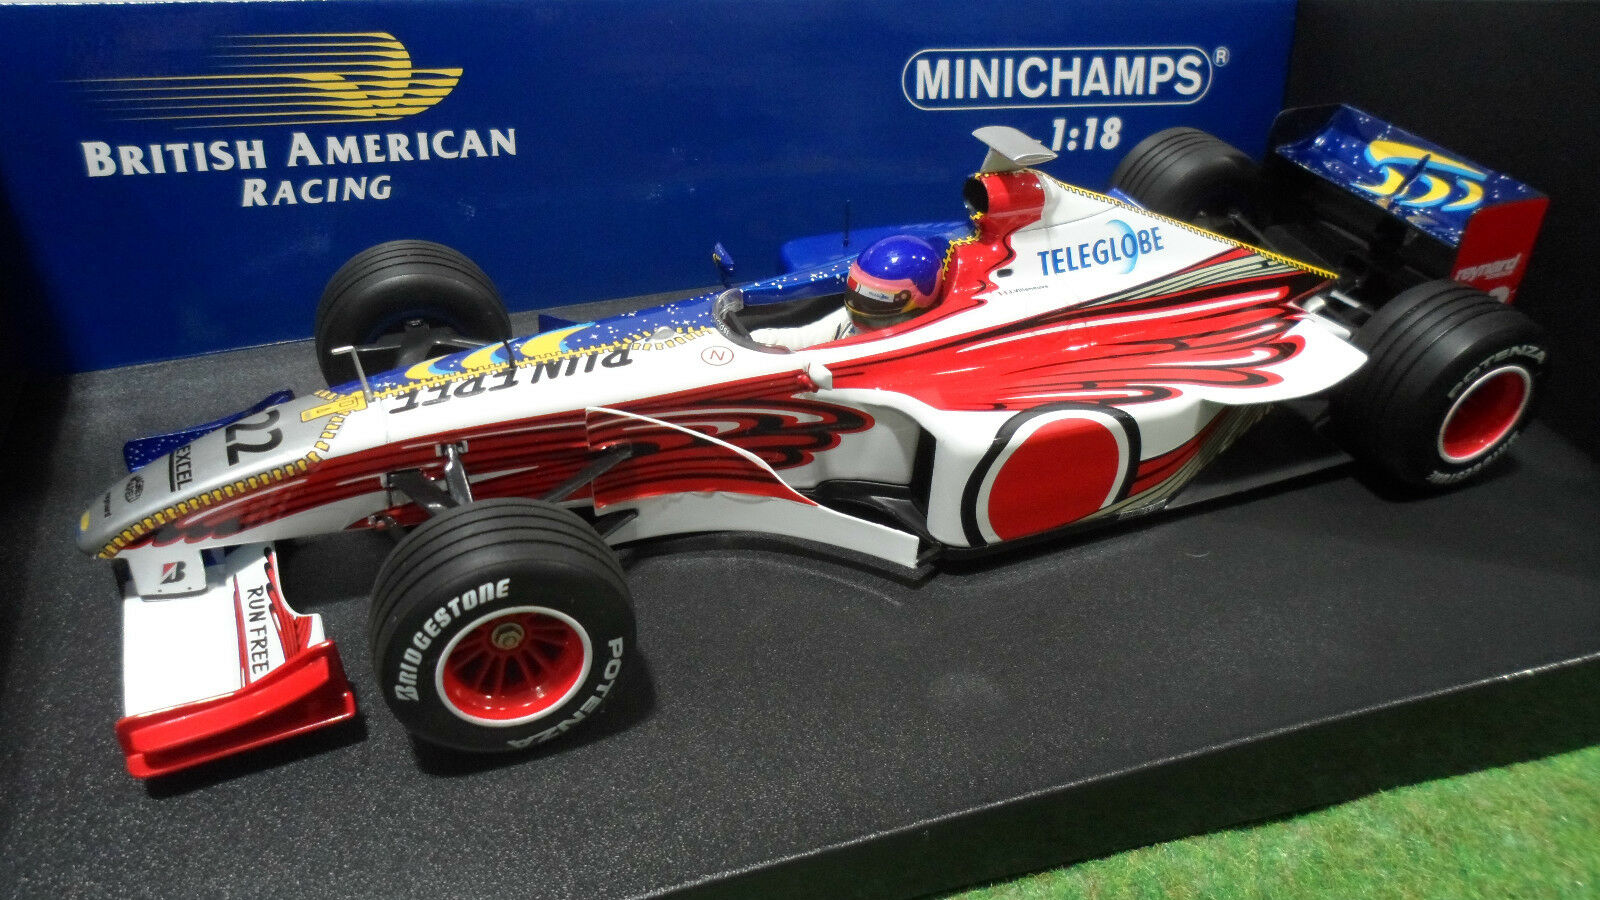 F1 BAR 01 SUPERTEC 1999 VILLENEUVE   22 formule 1 18 MINICHAMPS 180990022 voiture  contre authentique